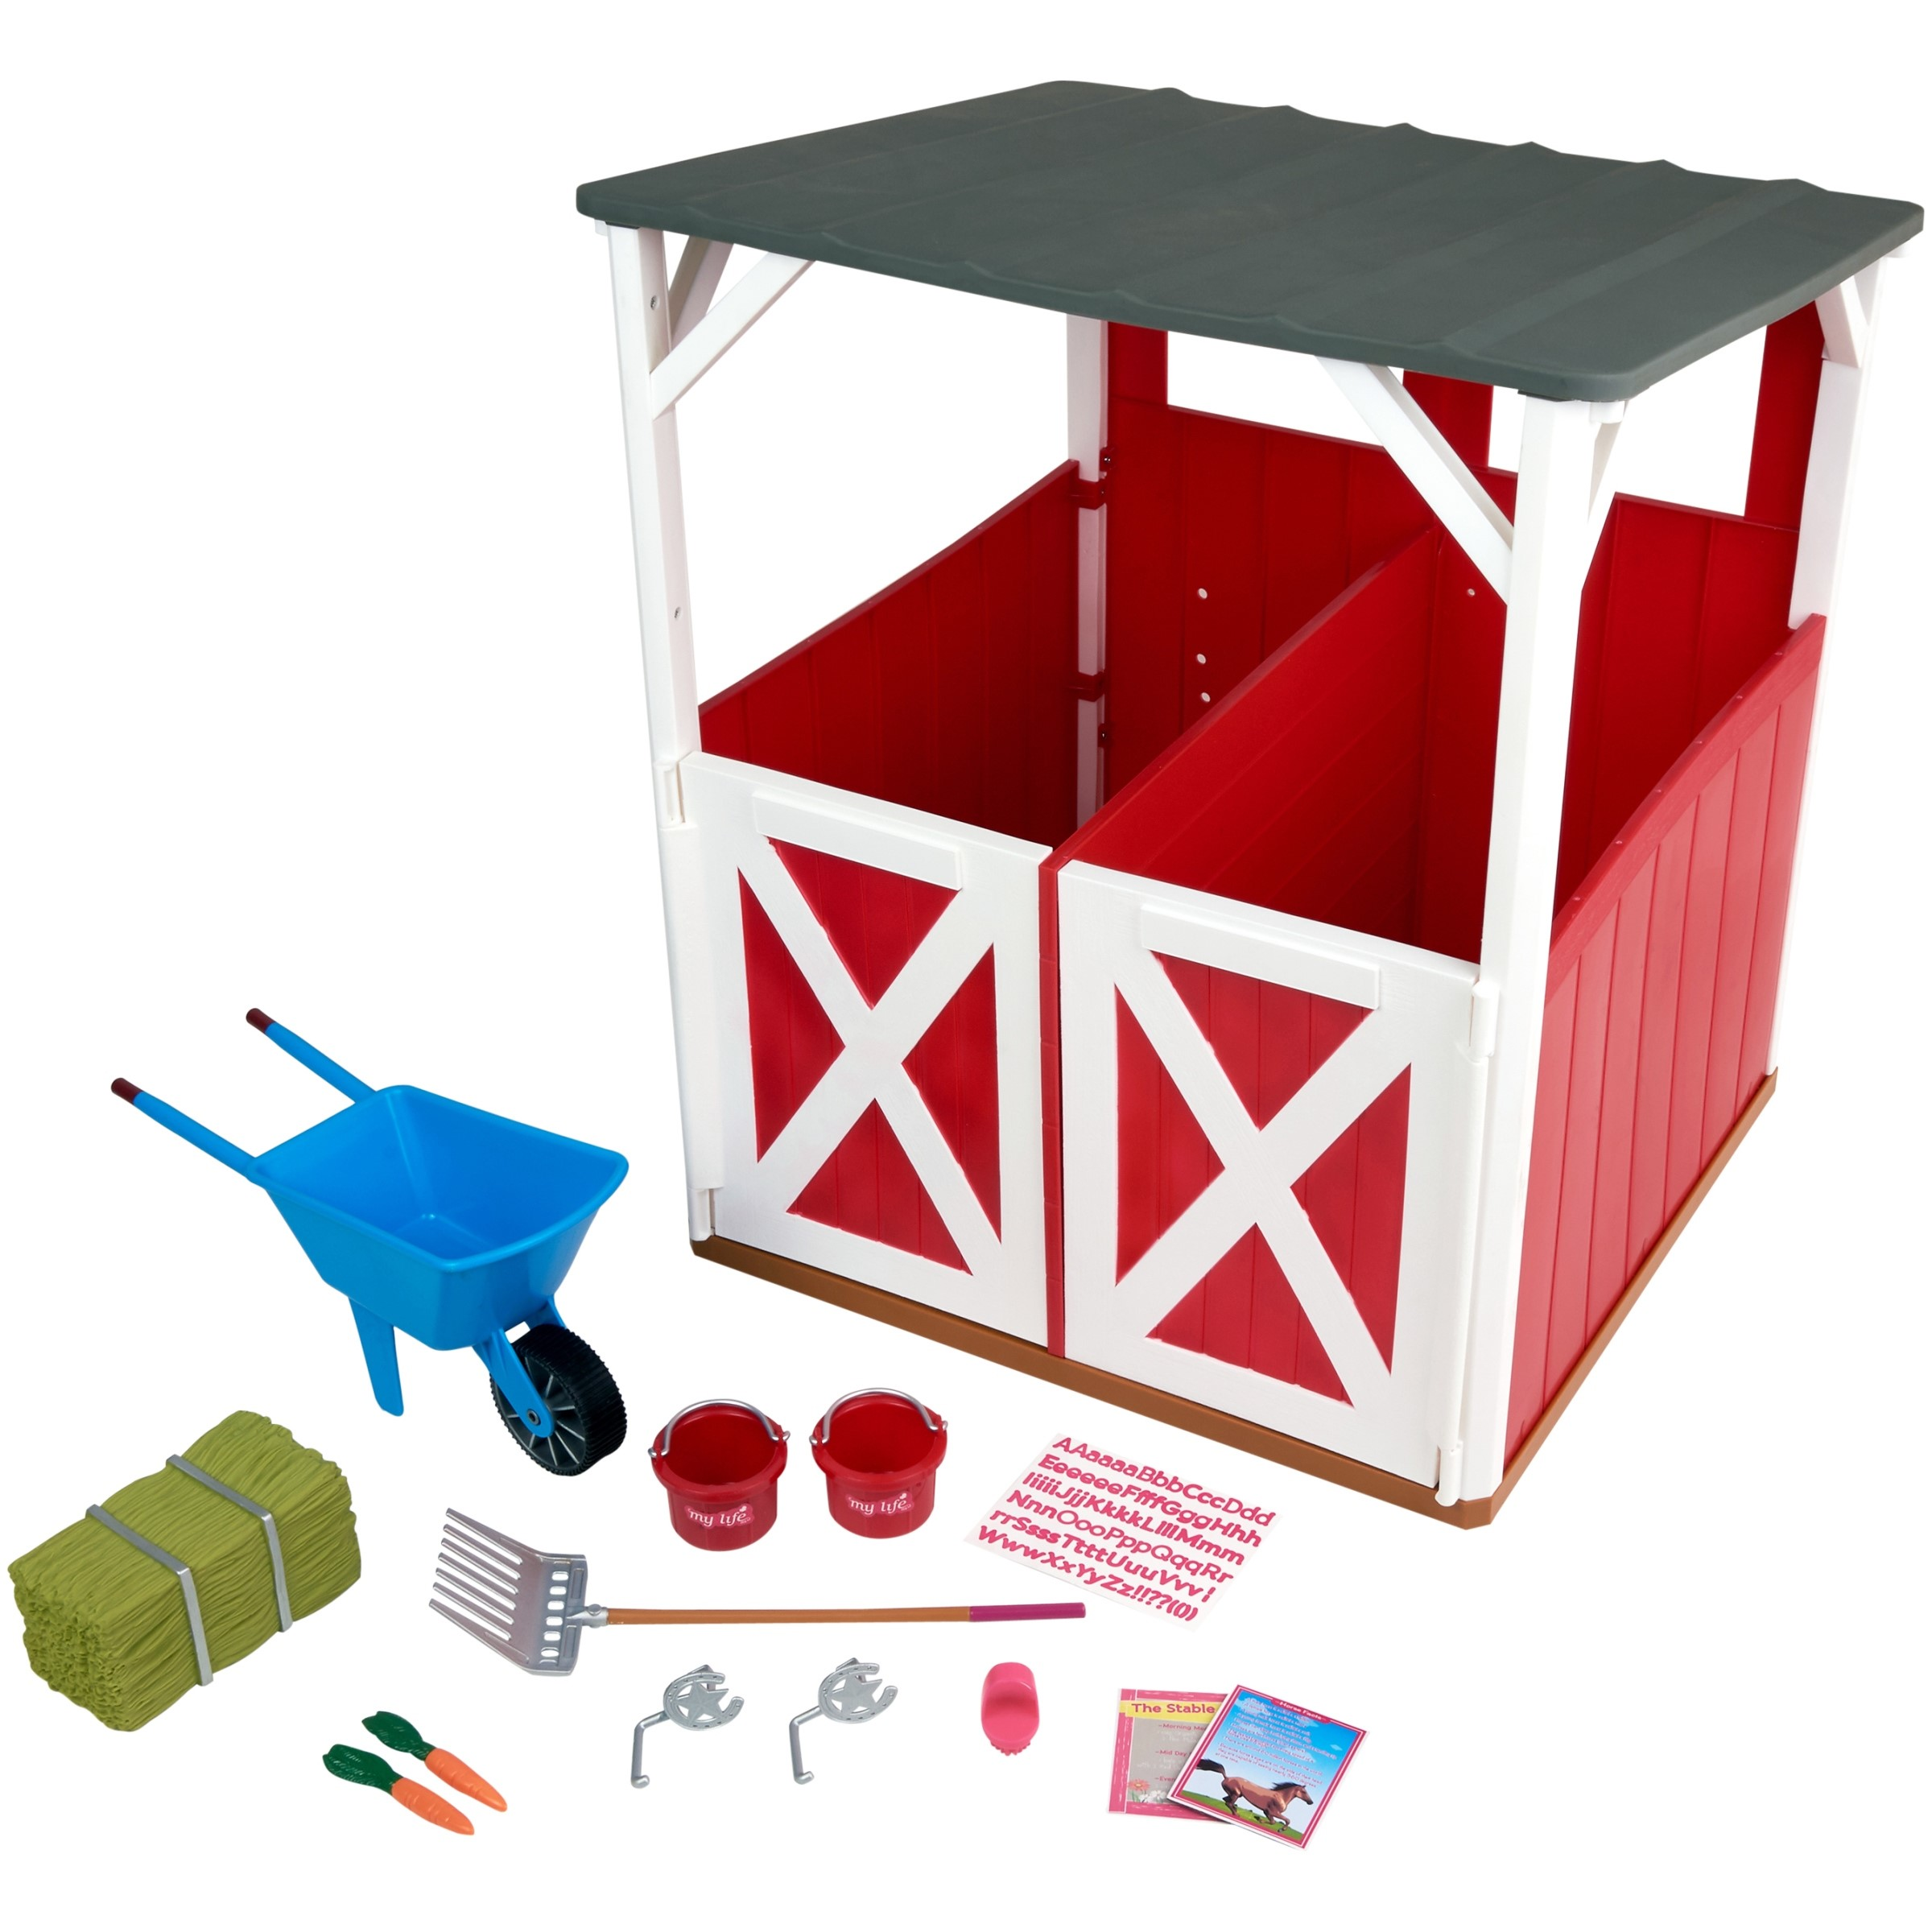 My Life As 2 Stall Stable Play Set Multiple Accessories Designed For Ages 3 And Up Walmart Com Walmart Com